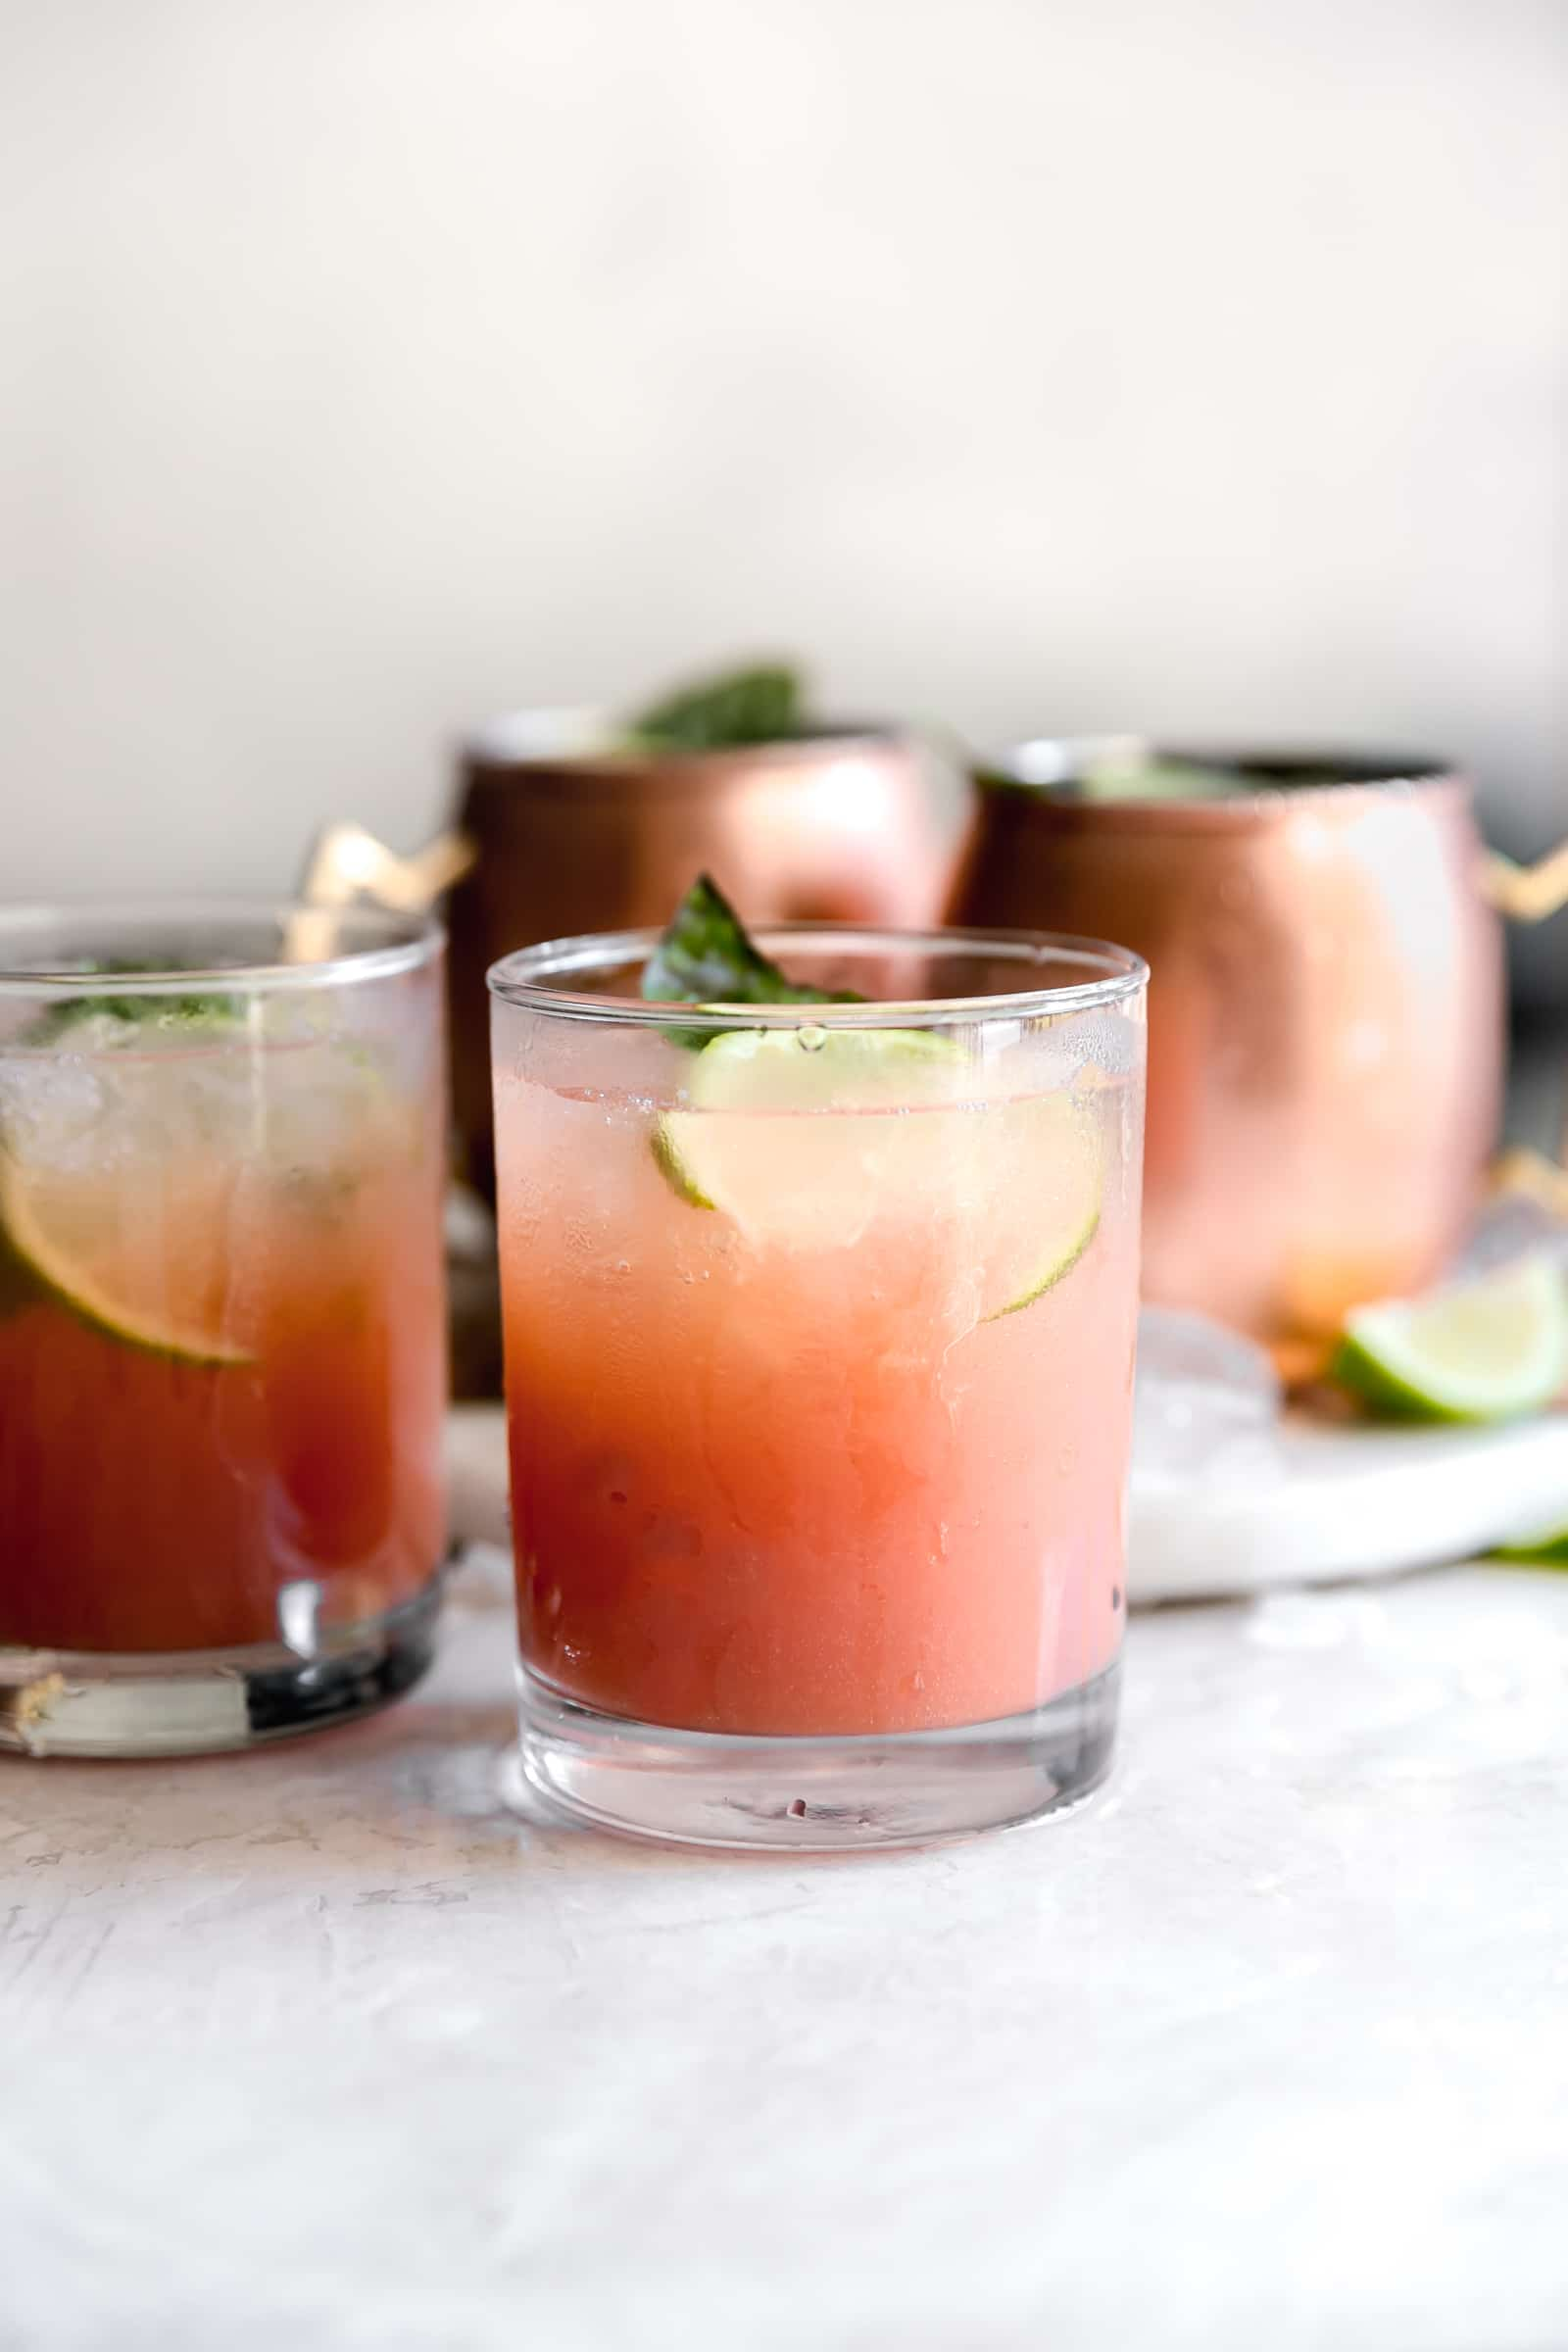 Guava Basil Moscow Mule Recipe A Sassy Spoon